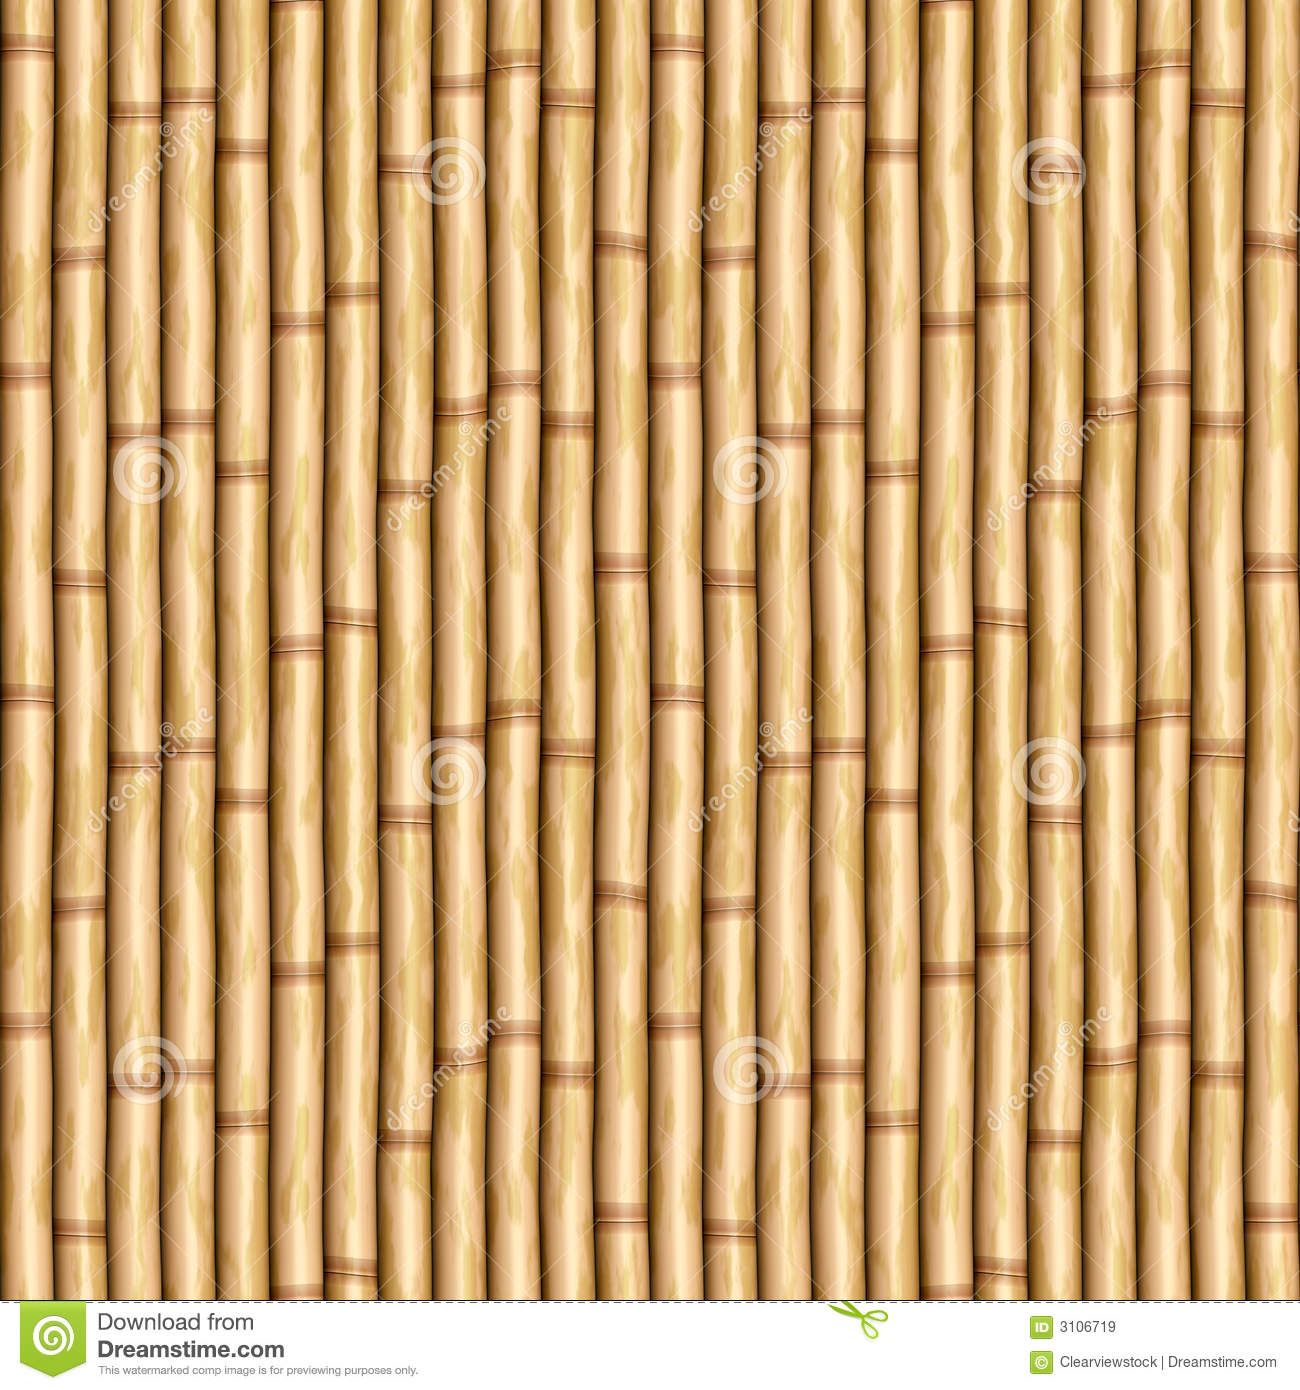 Bamboo Wood Wall Decor : Single bamboo texture ds max pixshark images